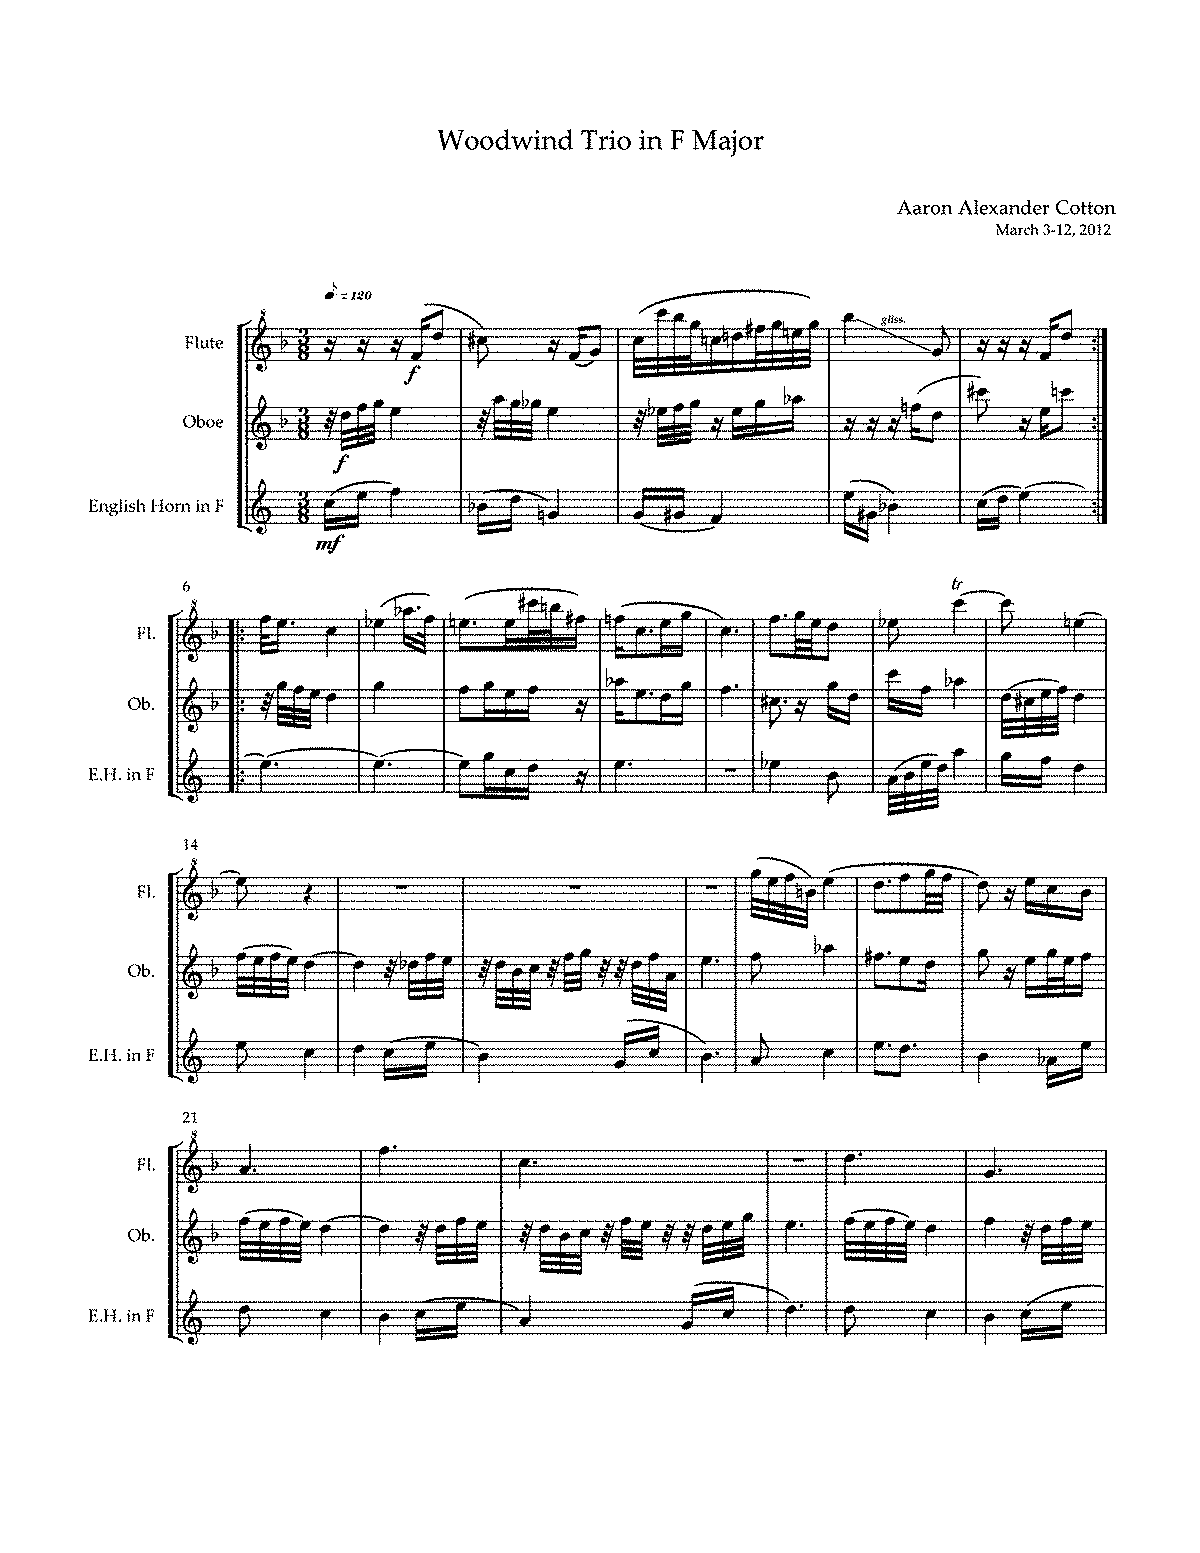 PMLP324865-Woodwind Trio in F Major by Aaron Alexander Cotton.pdf